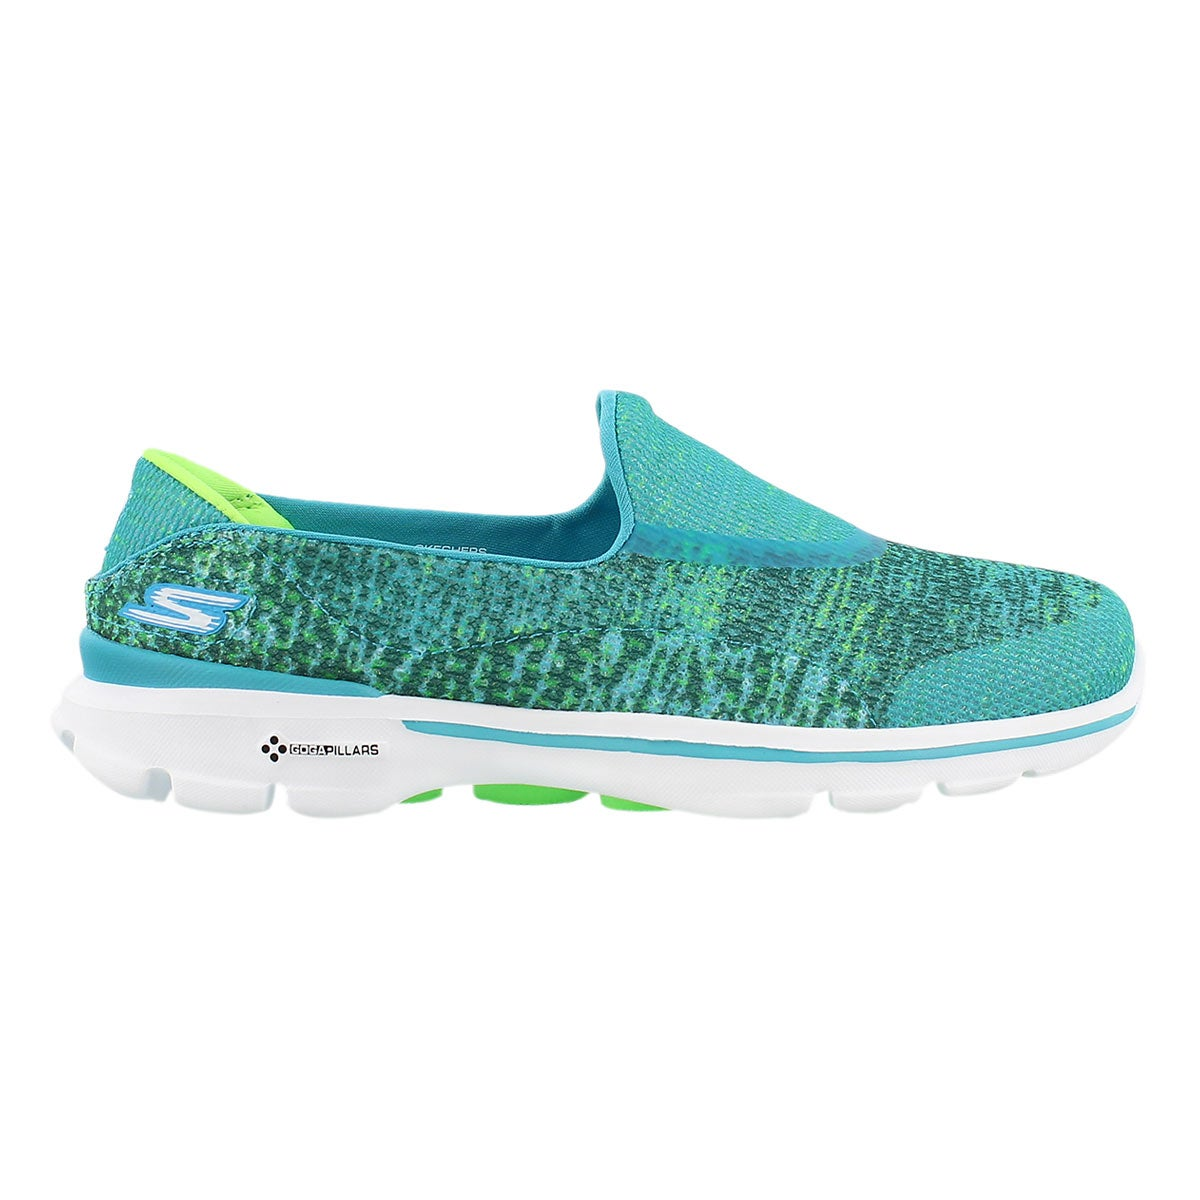 Lds GOwalk 3 Glisten teal slipon walking